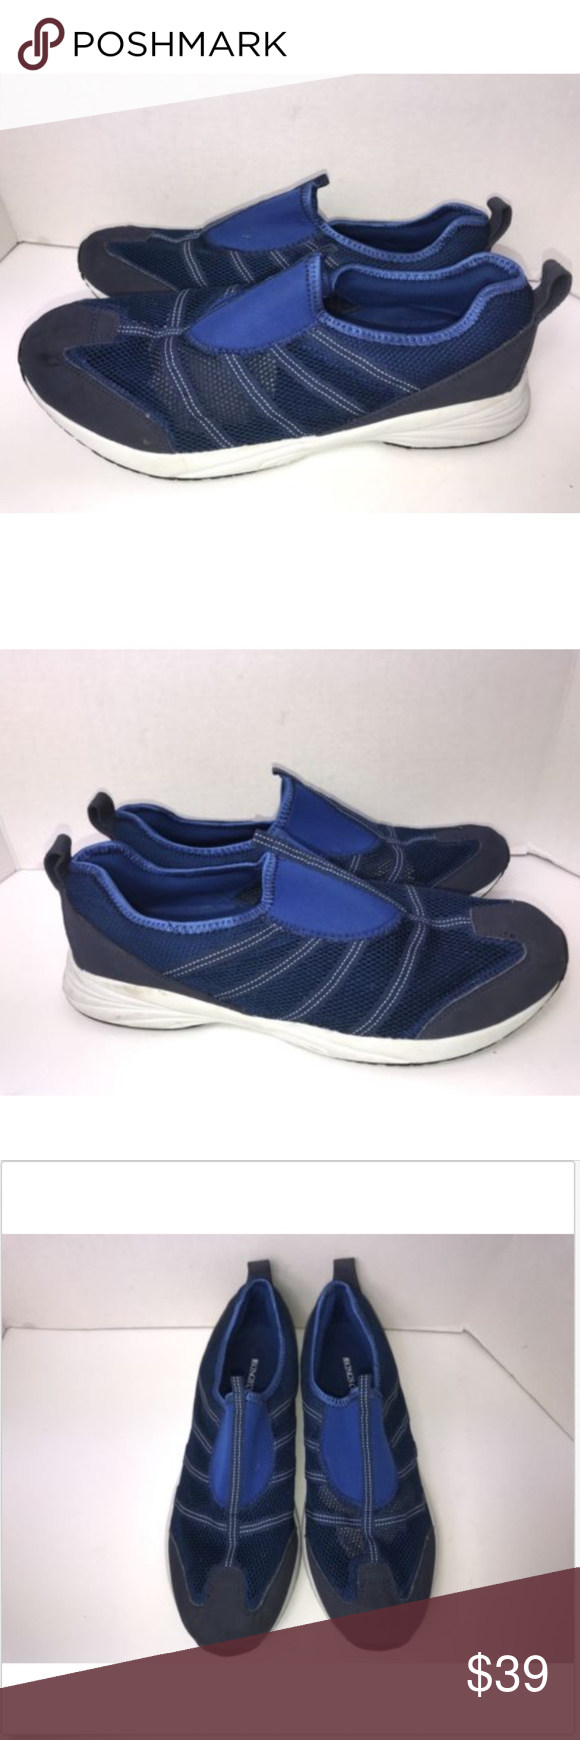 kings court mens Shoes Size 13W